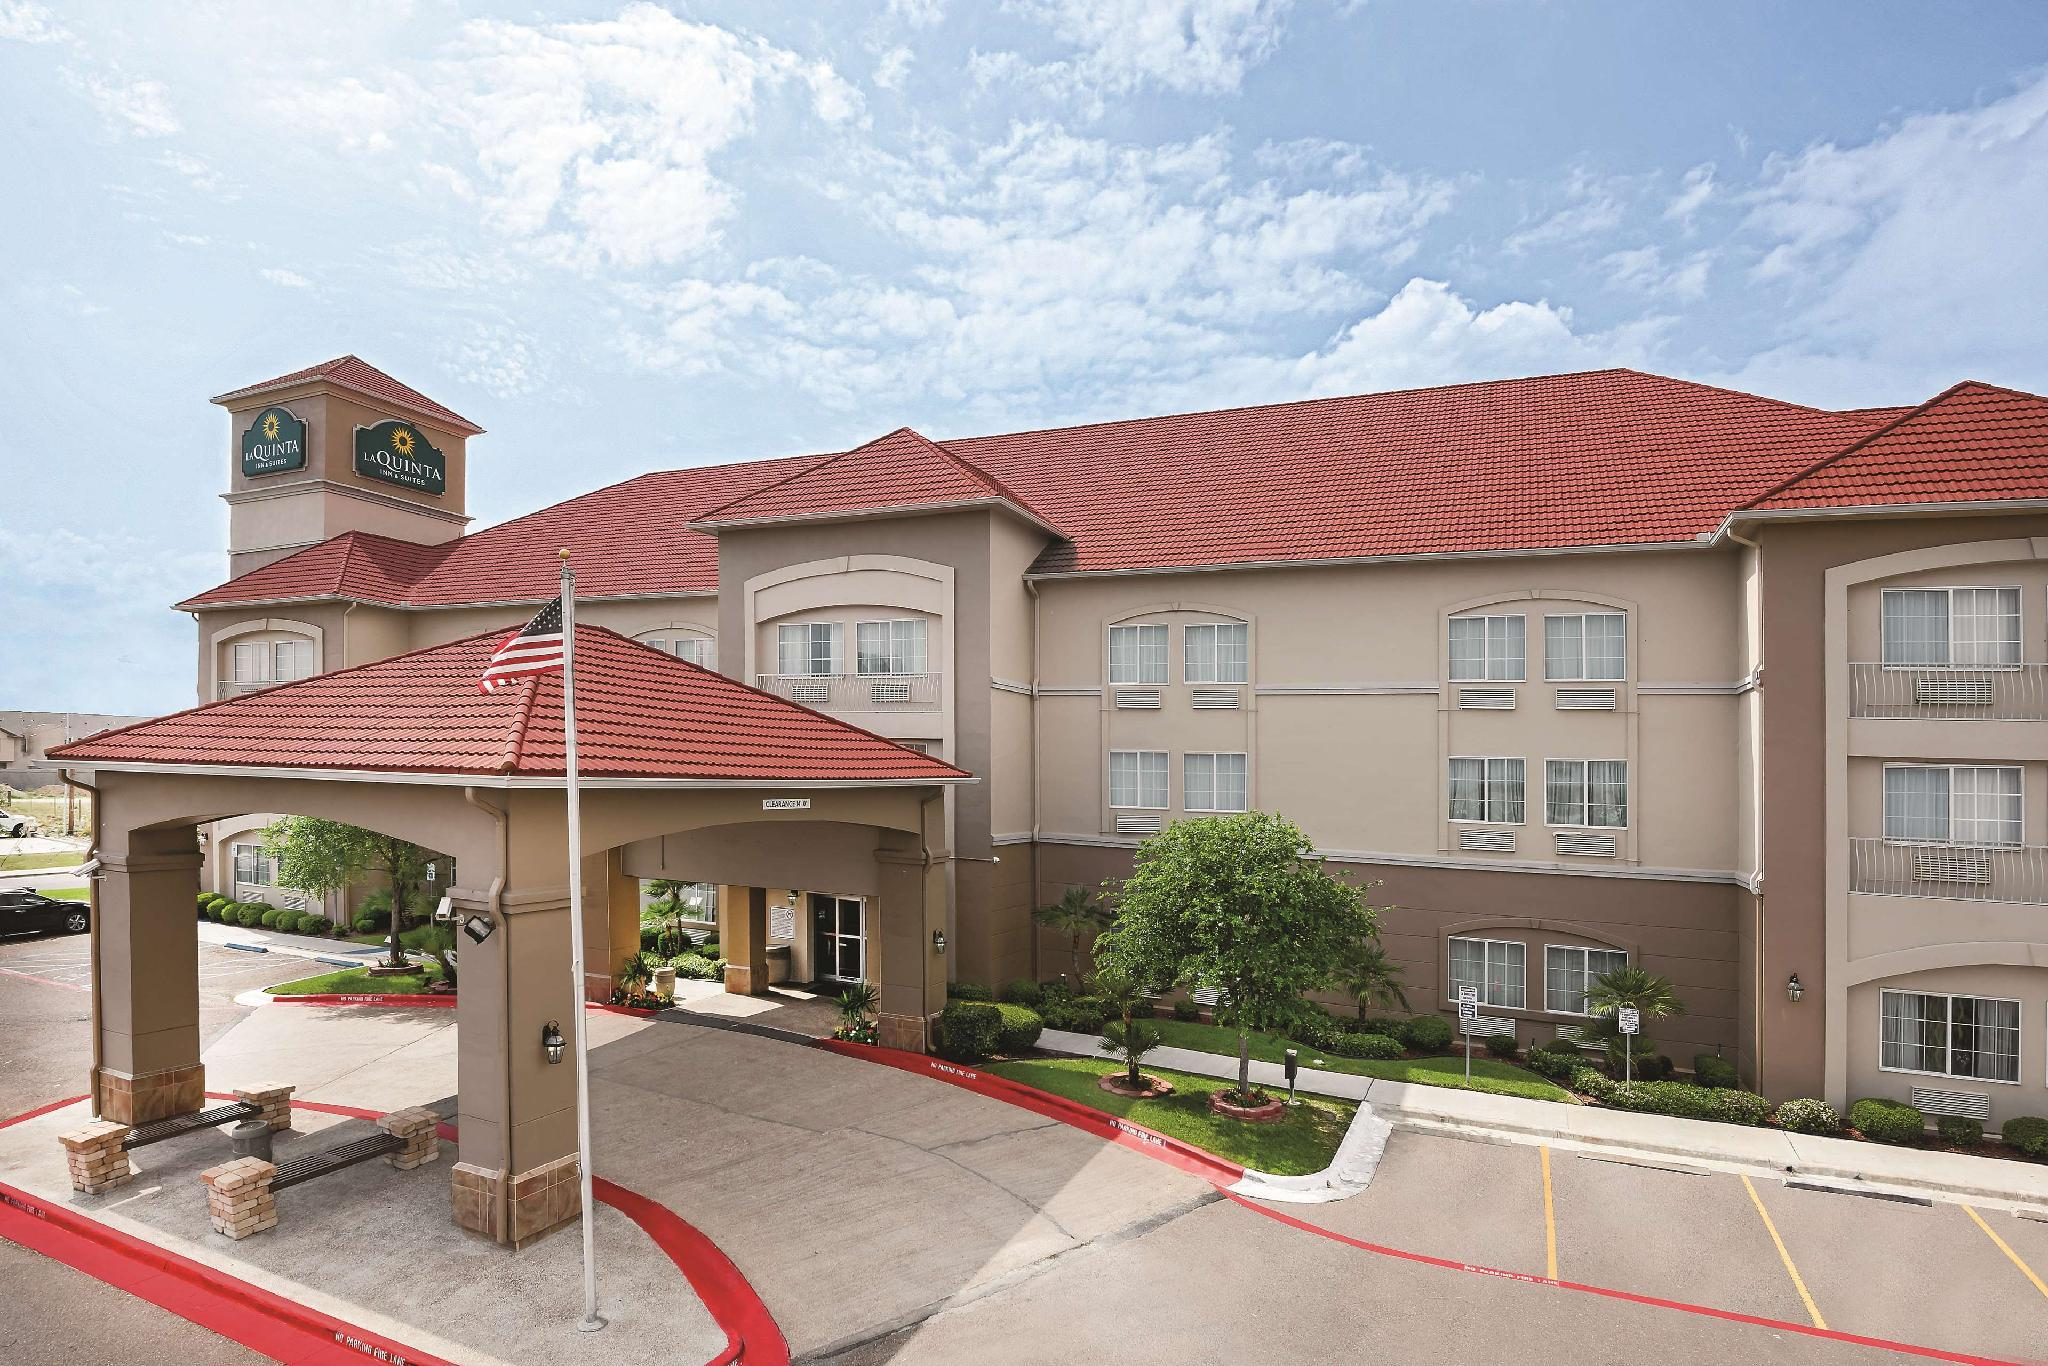 La Quinta Inn And Suites By Wyndham Laredo Airport